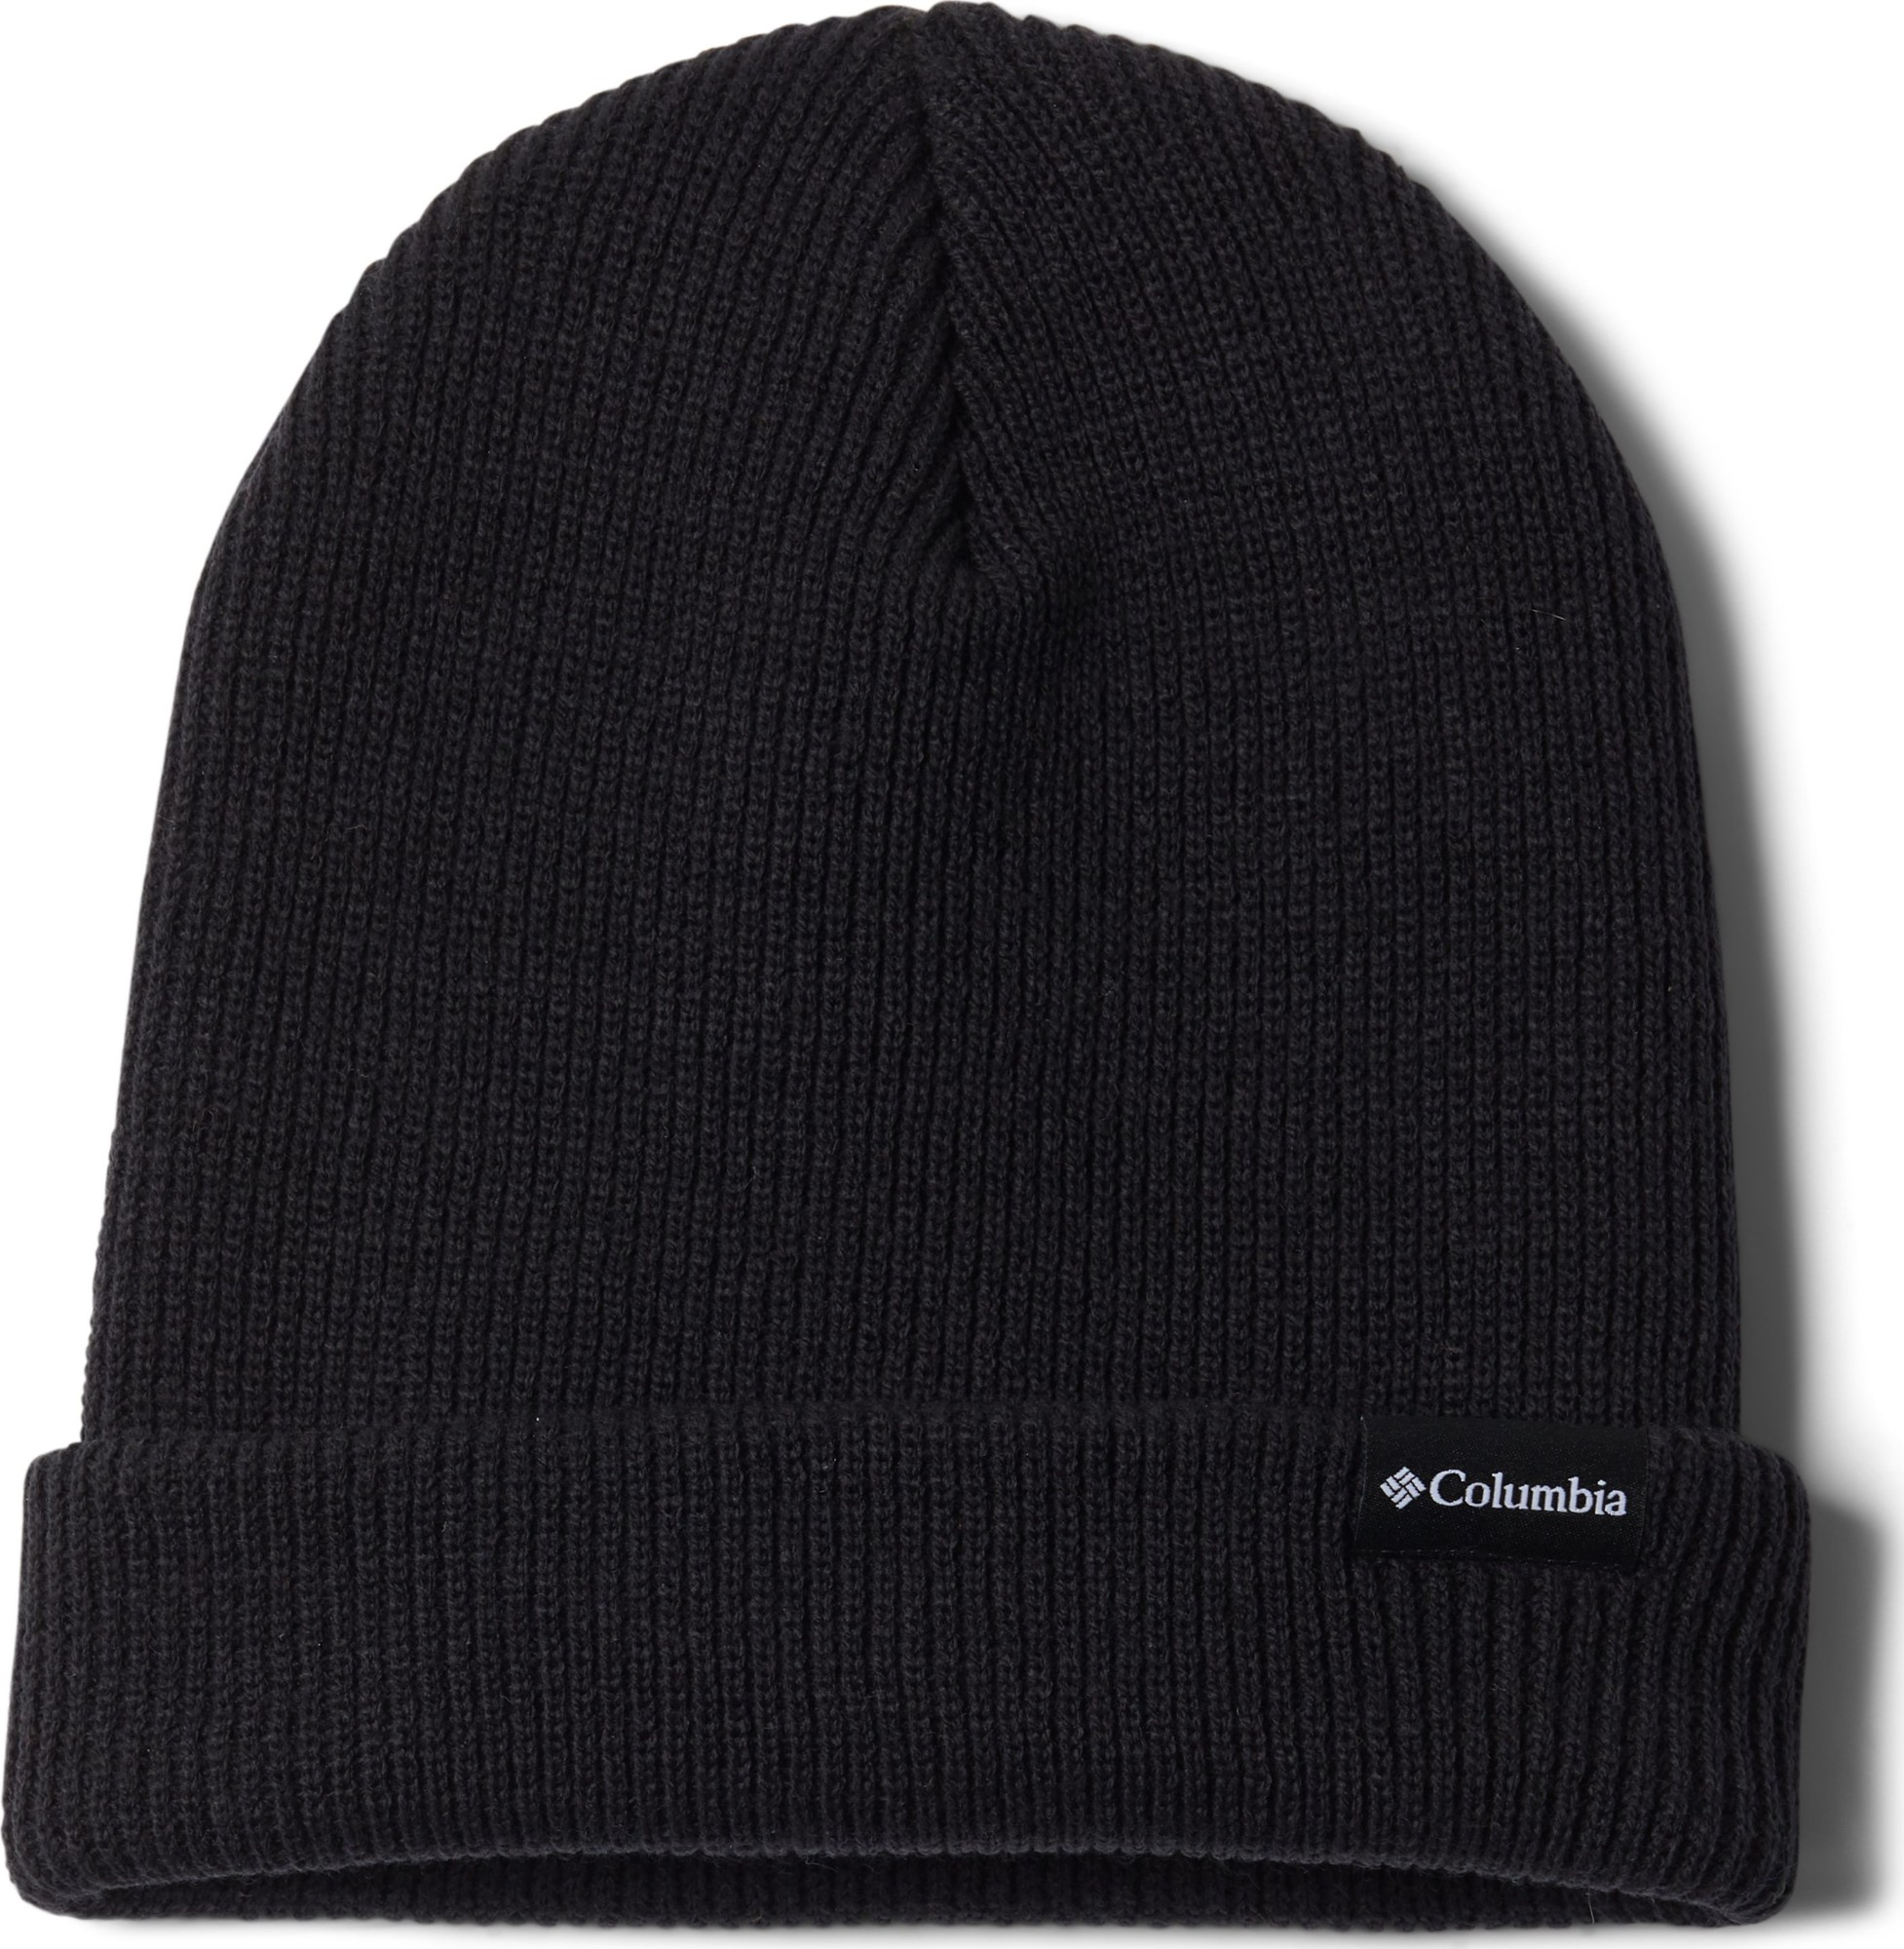 Columbia Whirlibird Cuffed Beanie Black One size